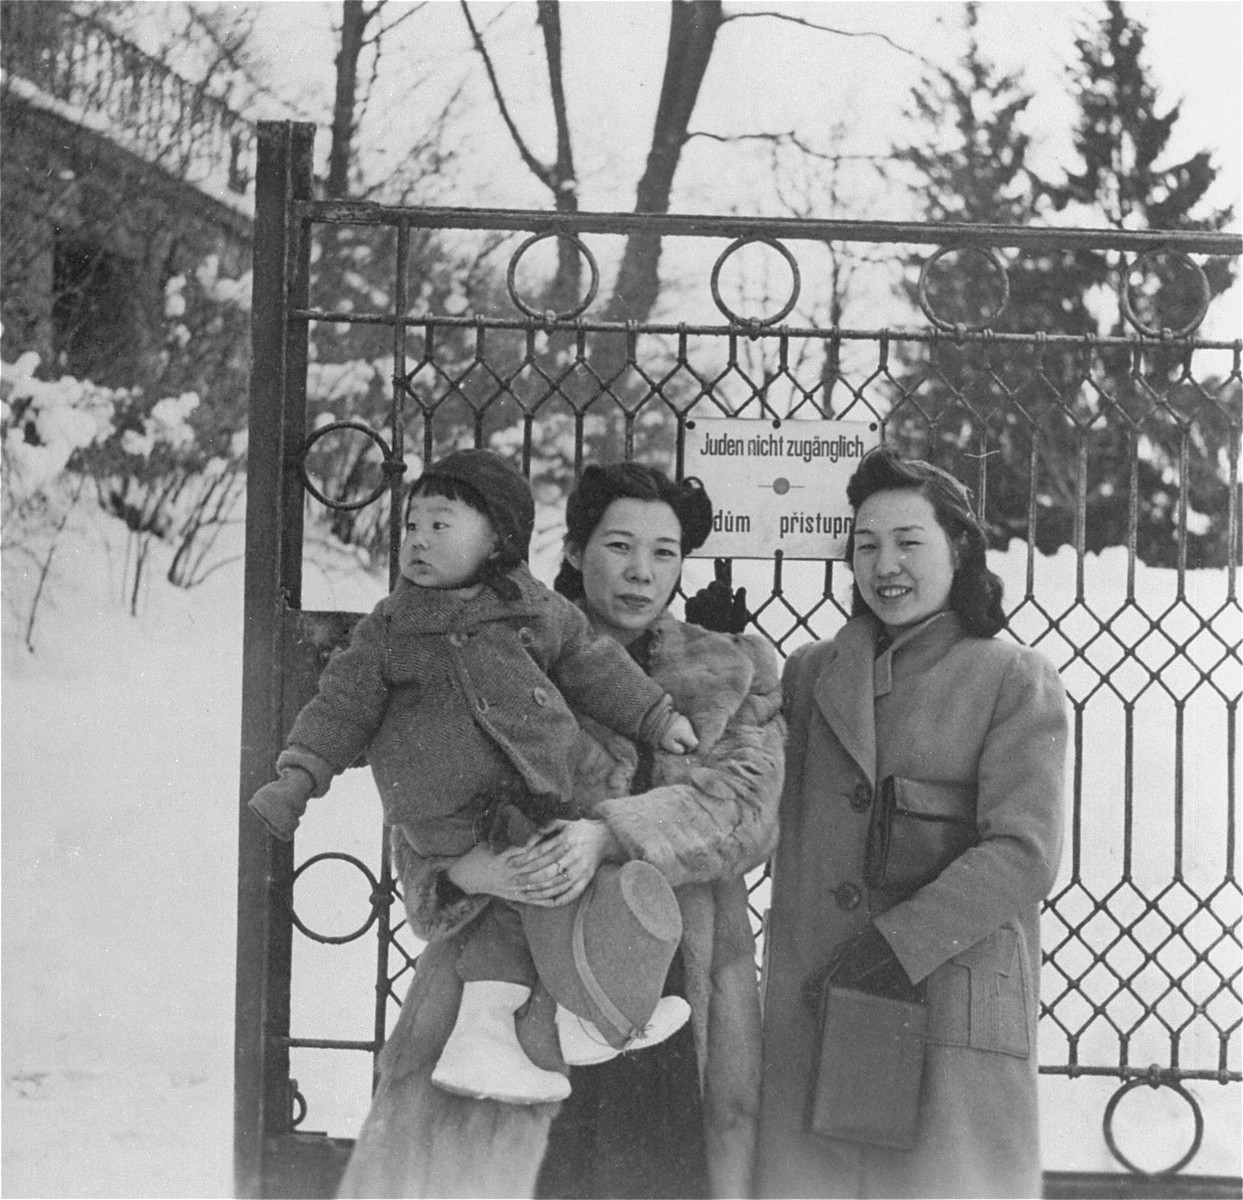 "Yukiko Sugihara (holding Hiroki) and her sister Setsuko Kikuchi pose in front of a park gate in Prague.  The posted sign reads ""Jews not allowed"" in German.  However the lower line in Czech reads ""Jews Allowed"". Someone as covered or scratched out the no in the Czech line.   The Sugihara family moved to Prague in mid-September 1940 after Chiune was declared 'Persona Non Grata' in Berlin.  They remained in Prague until the closing of the consulate on 15 February 1941."